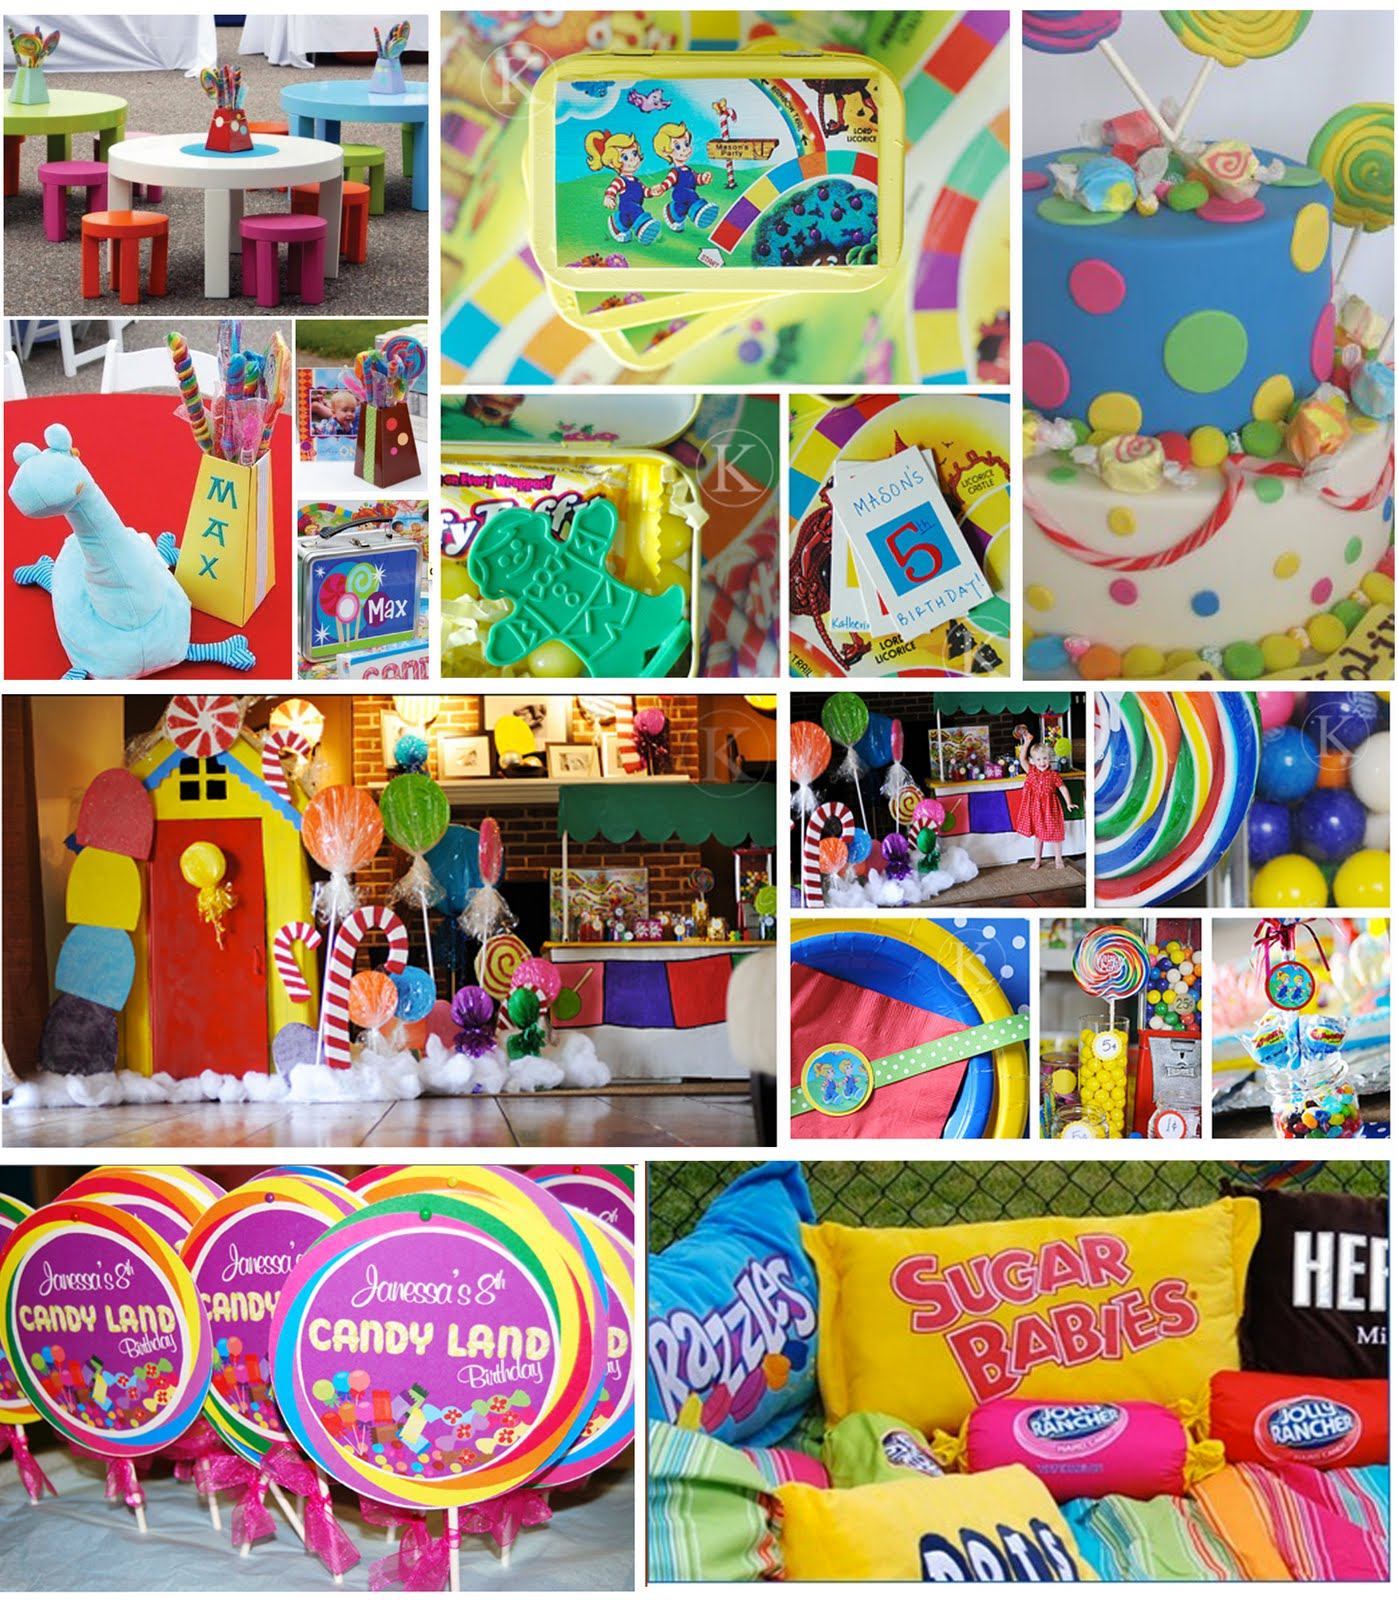 Candyland Party Theme Games